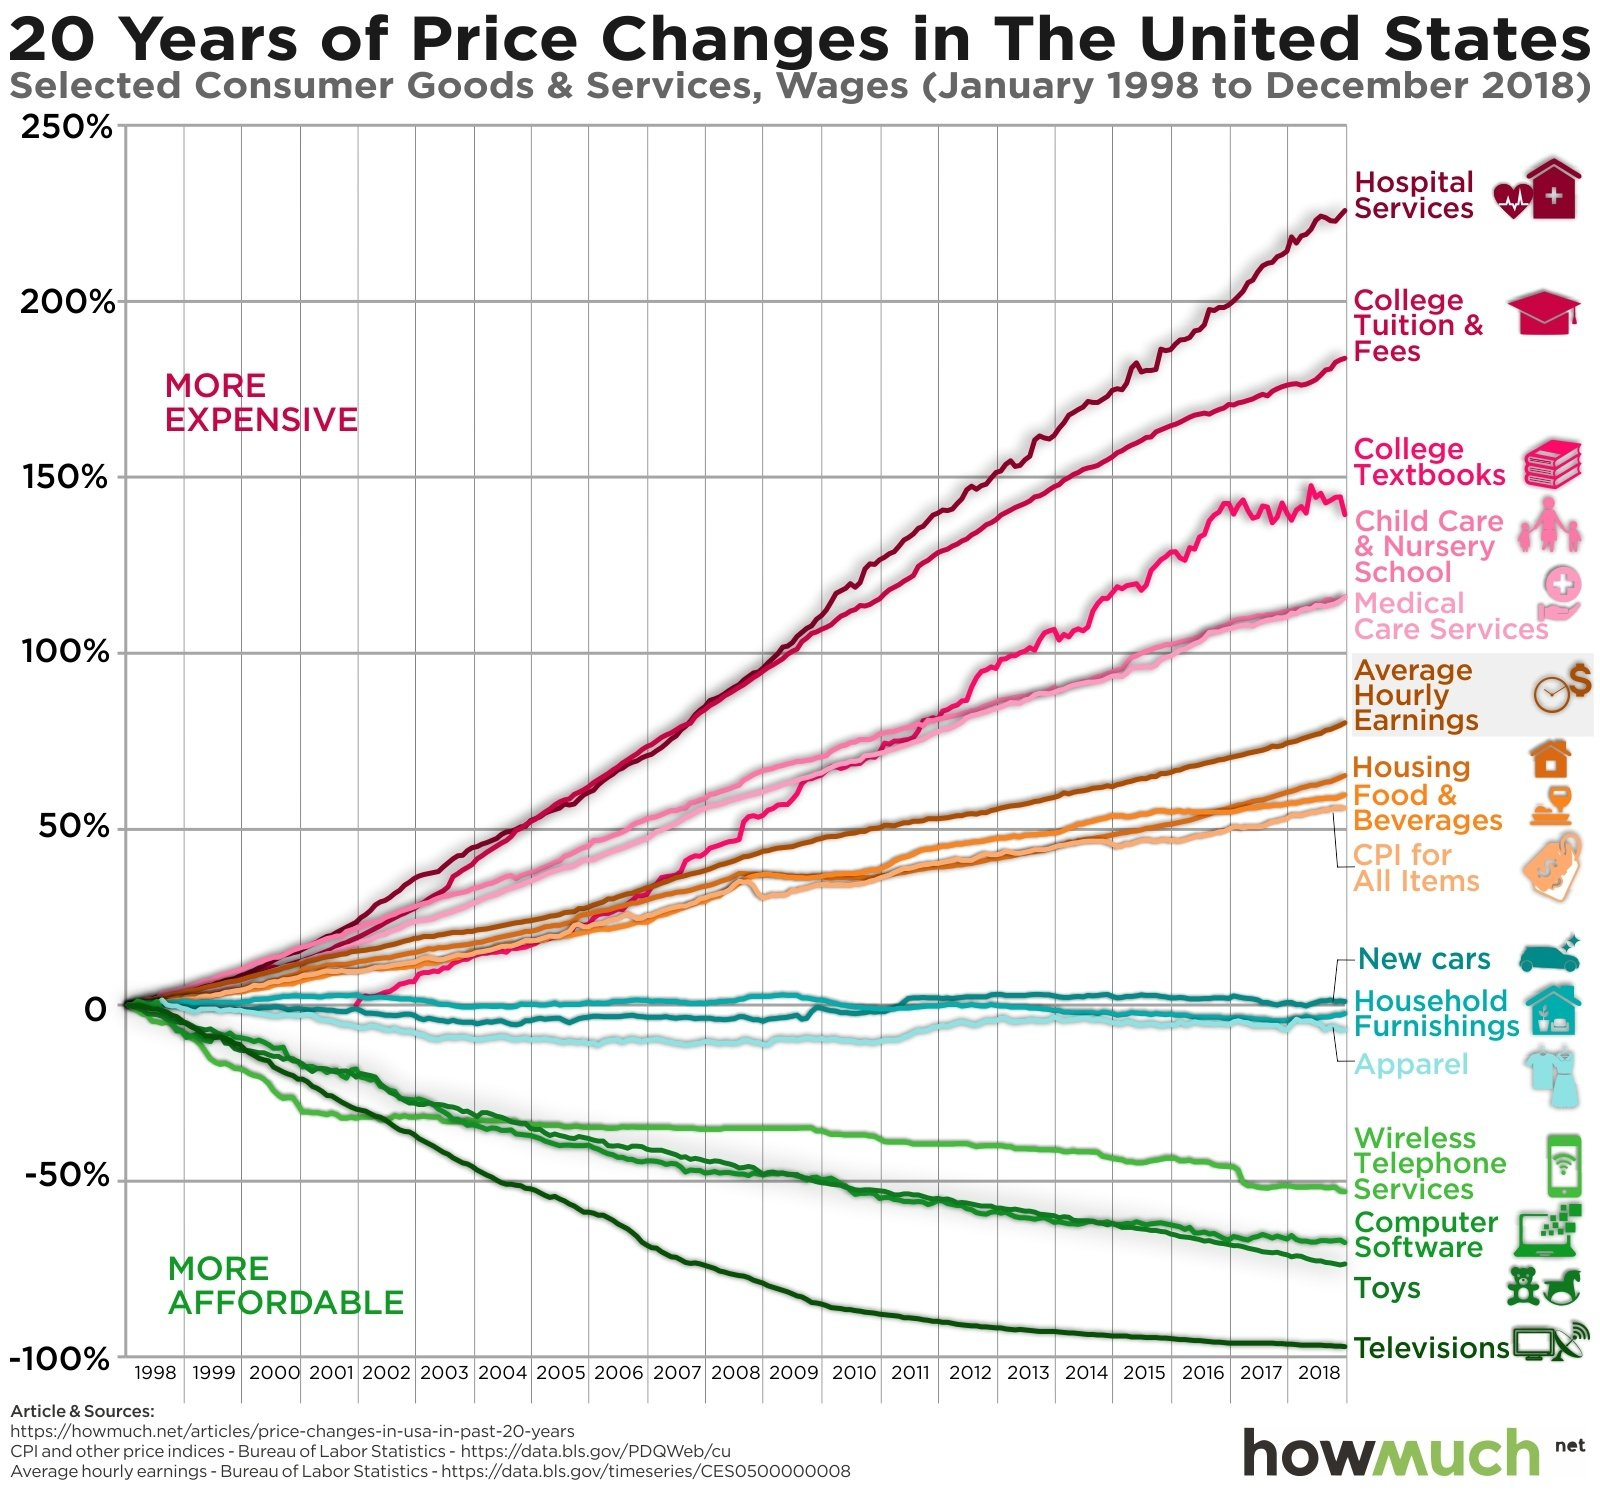 How Much Prices Have Changed For Different Goods And Services Over The Last 20 Years, Graphed